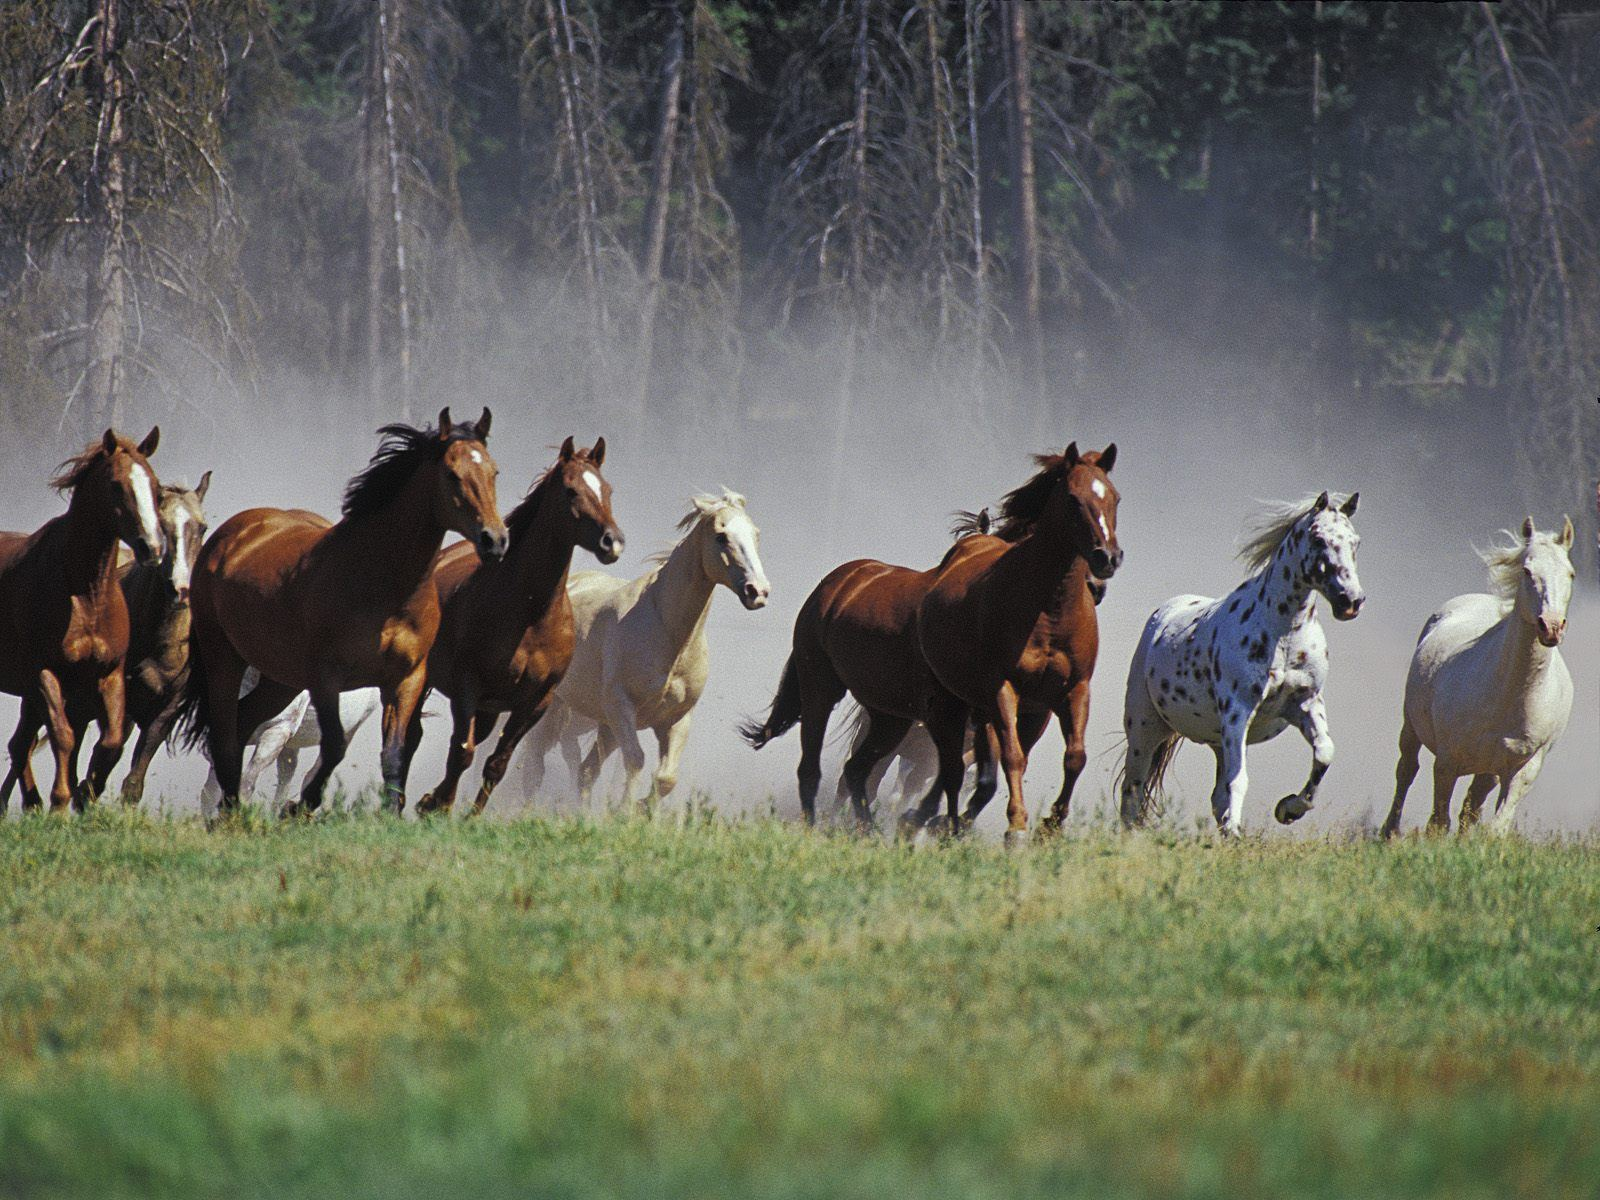 Horses Free Stock Photos Reviewed by mas pono on Rating: 4.5